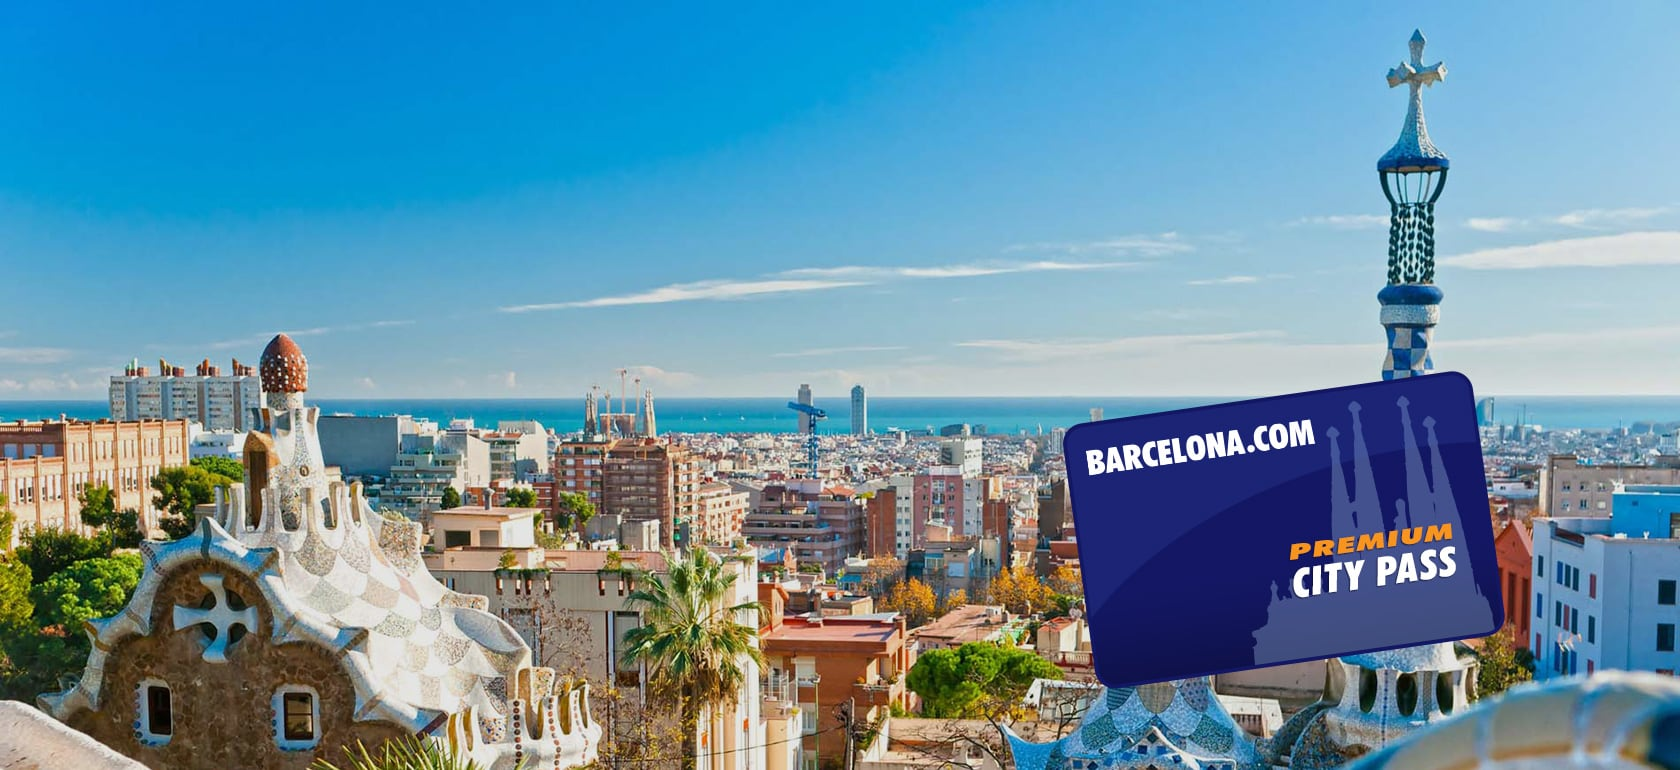 Barcelona City Pass - Premium